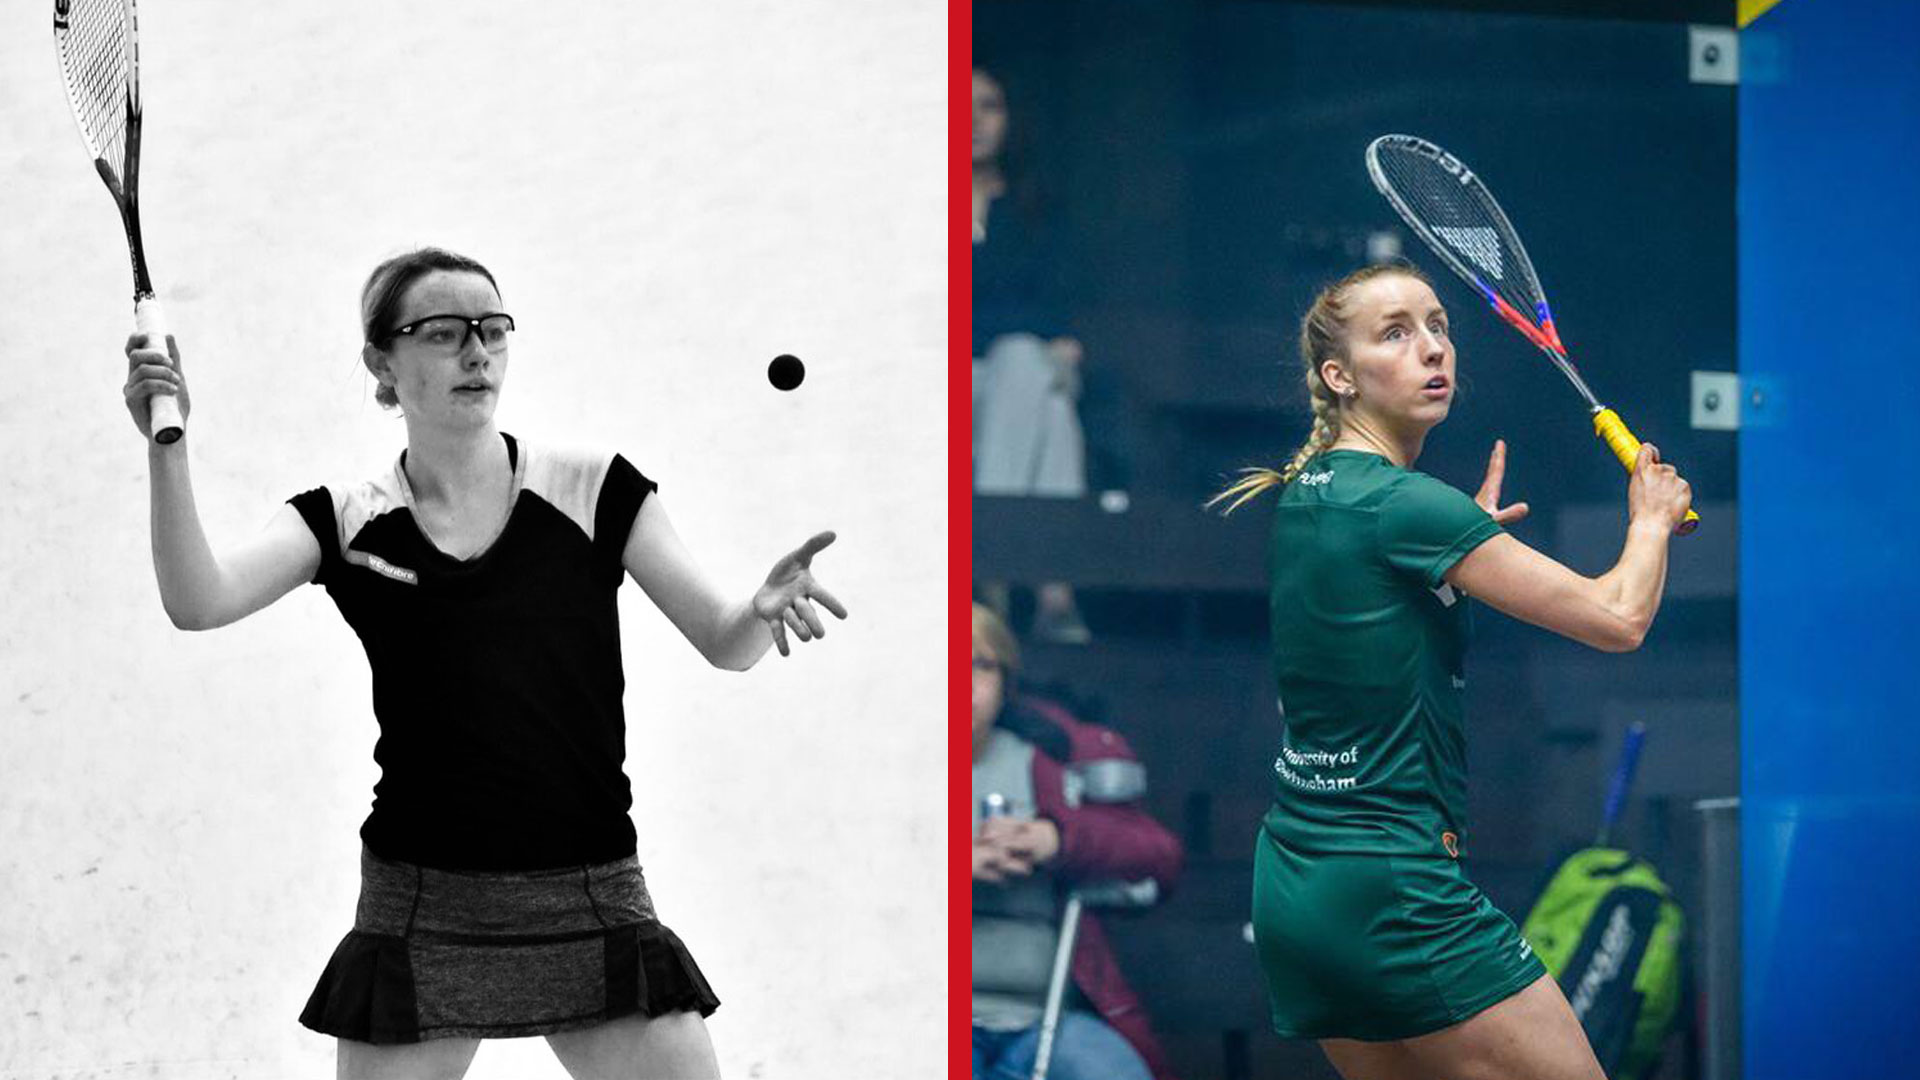 AS Insurance Services is proud to sponsor professional squash player Polly Clark.